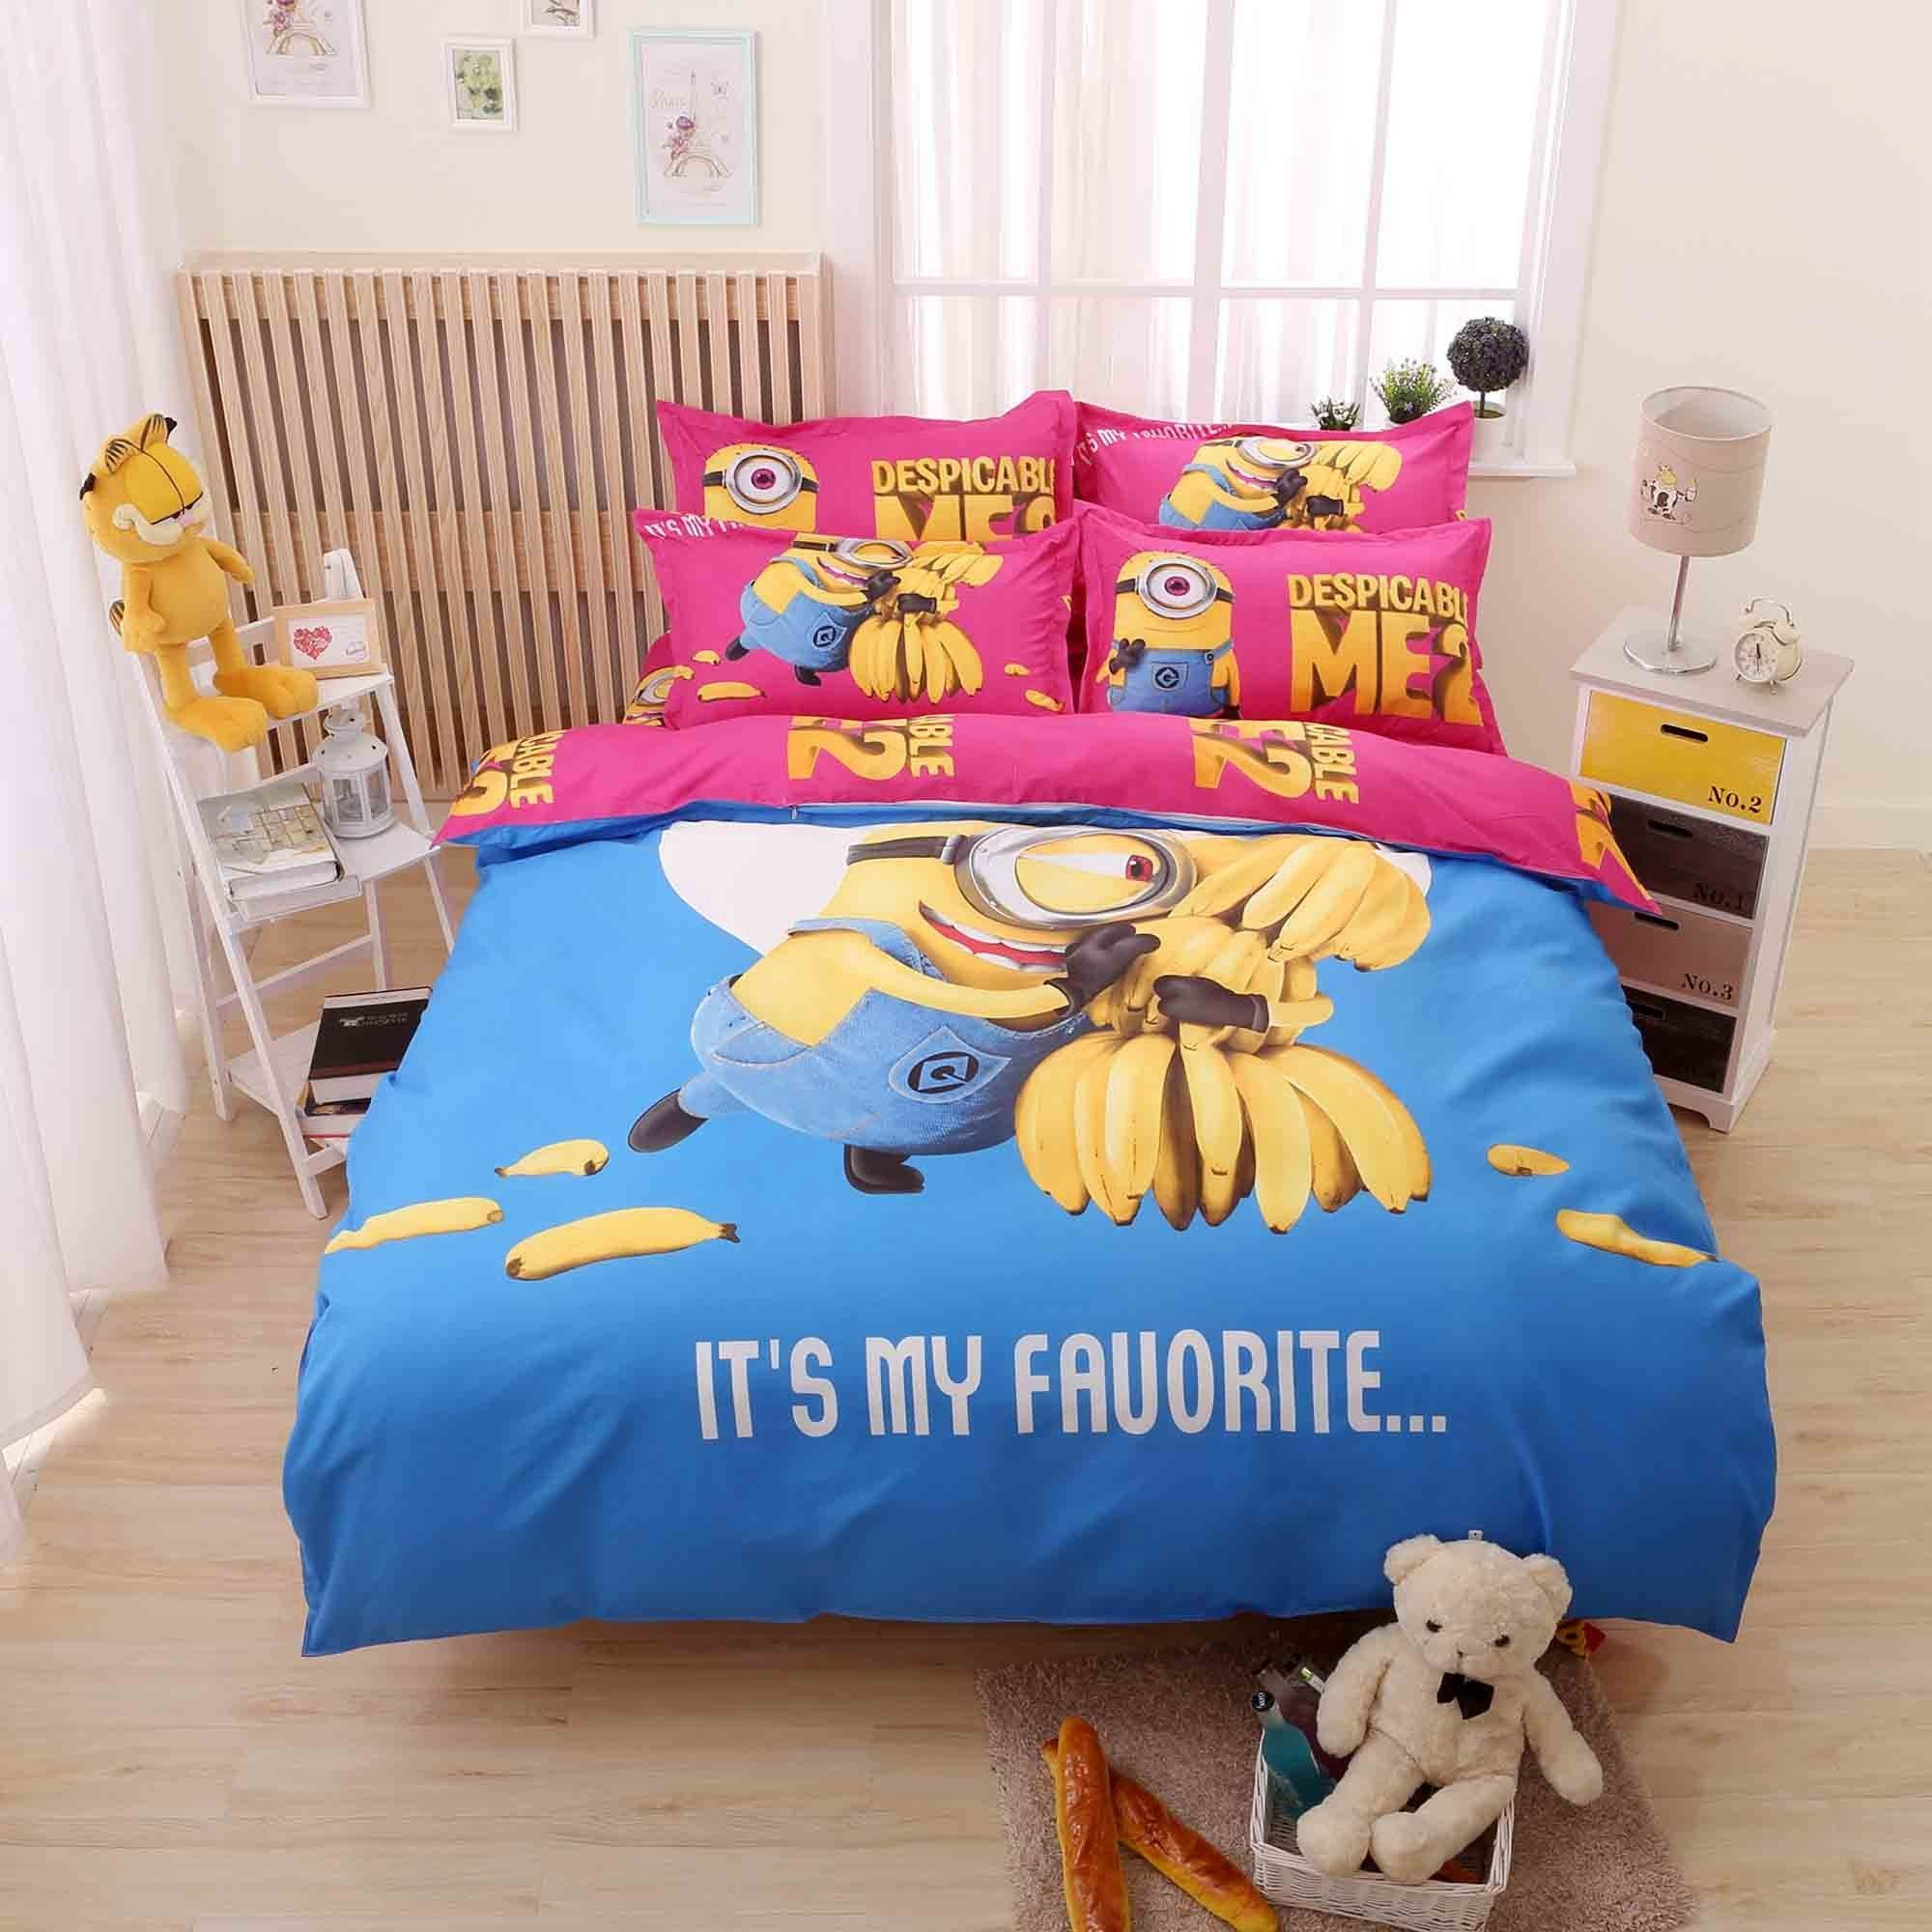 bedding about bed toddler girl size bookcase enticing twin papasan good splendiferous teen boybedroom enamour plus kids sets in batman looking images walmart sheets comely zq toddlers chair bedrooms boys set on pinterest boy your com